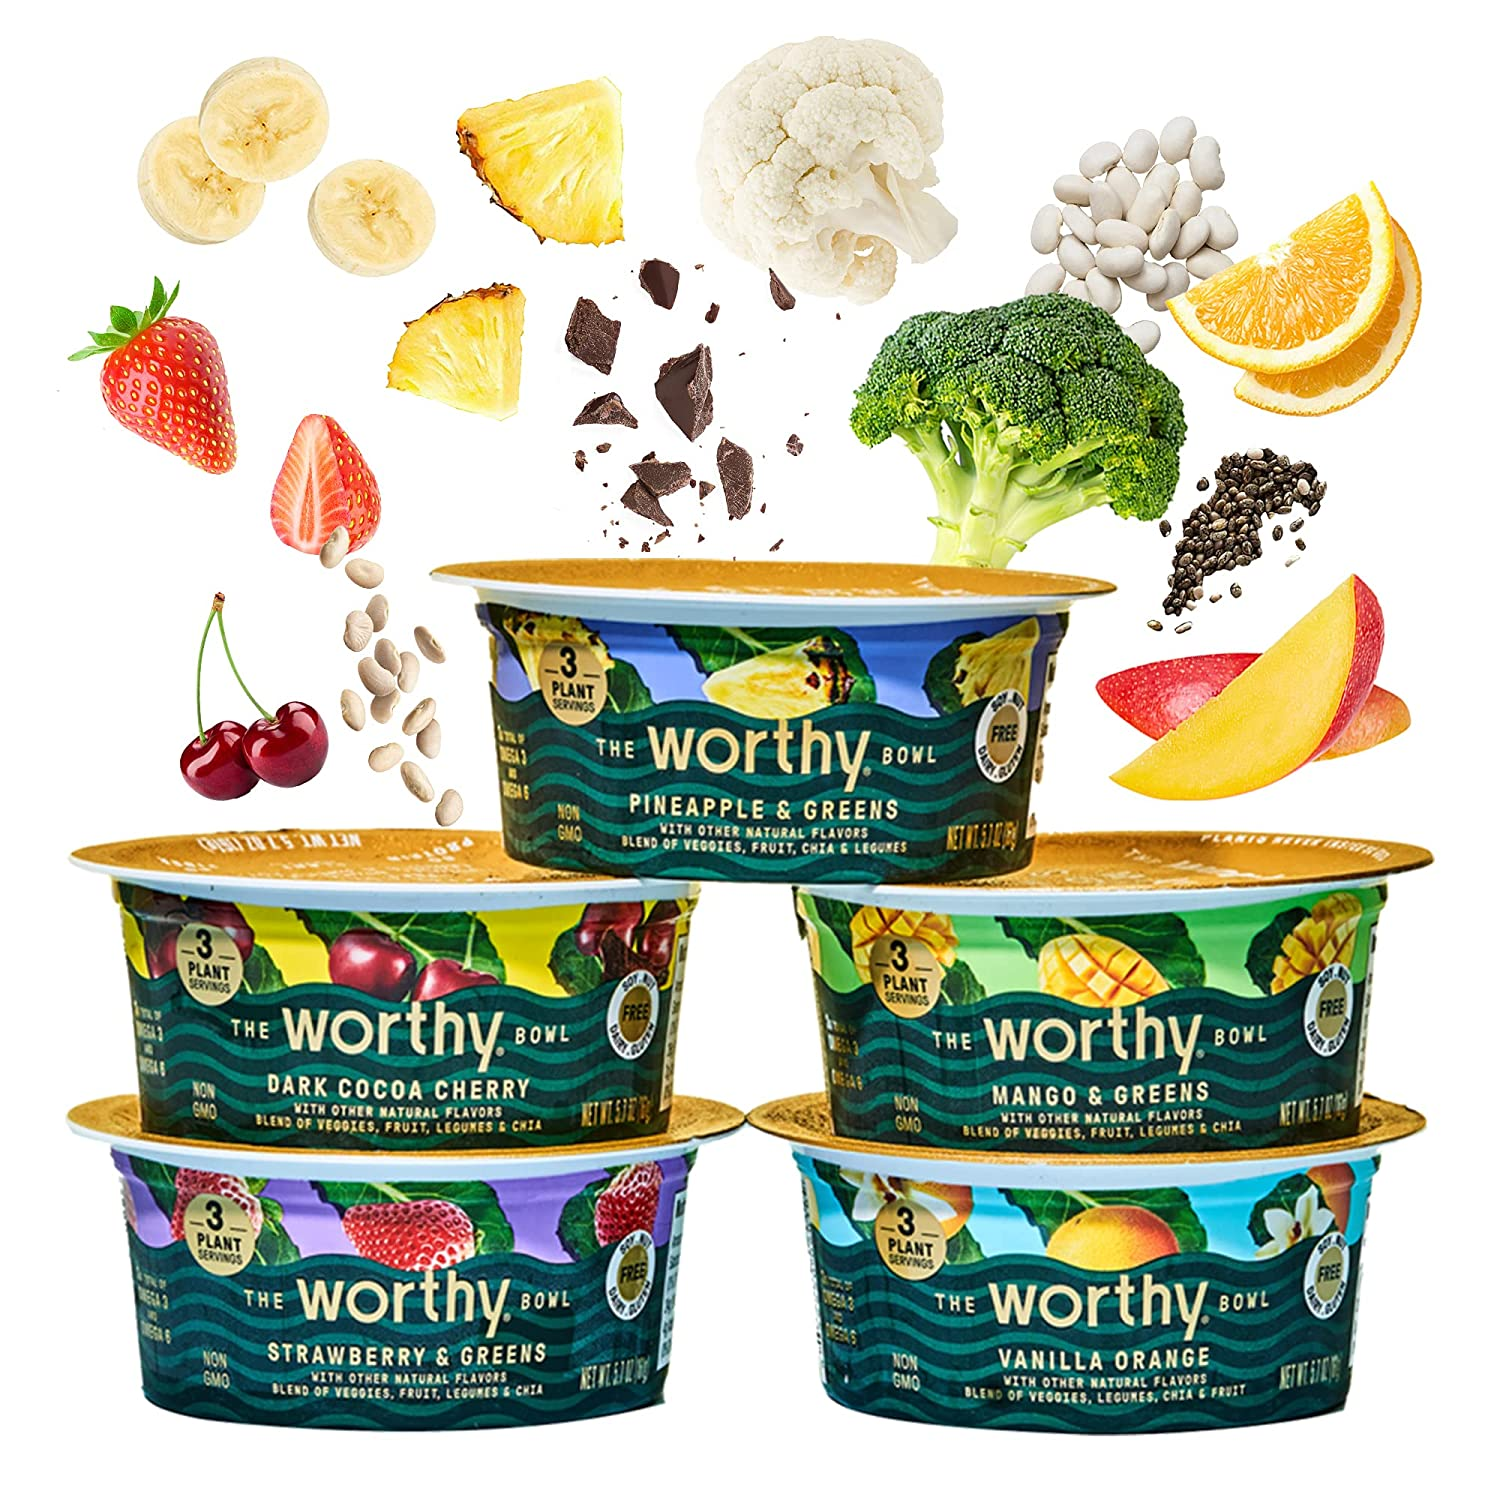 WORTHY BOWL Fruit Snacks Blended Veggies, Fruit, Protein, and Fiber   Gluten Free, Vegan, and Non-GMO   Plant Based High Protein Snacks   Healthy Snacks and Low Sugar Snacks   5.7 Oz Bowls